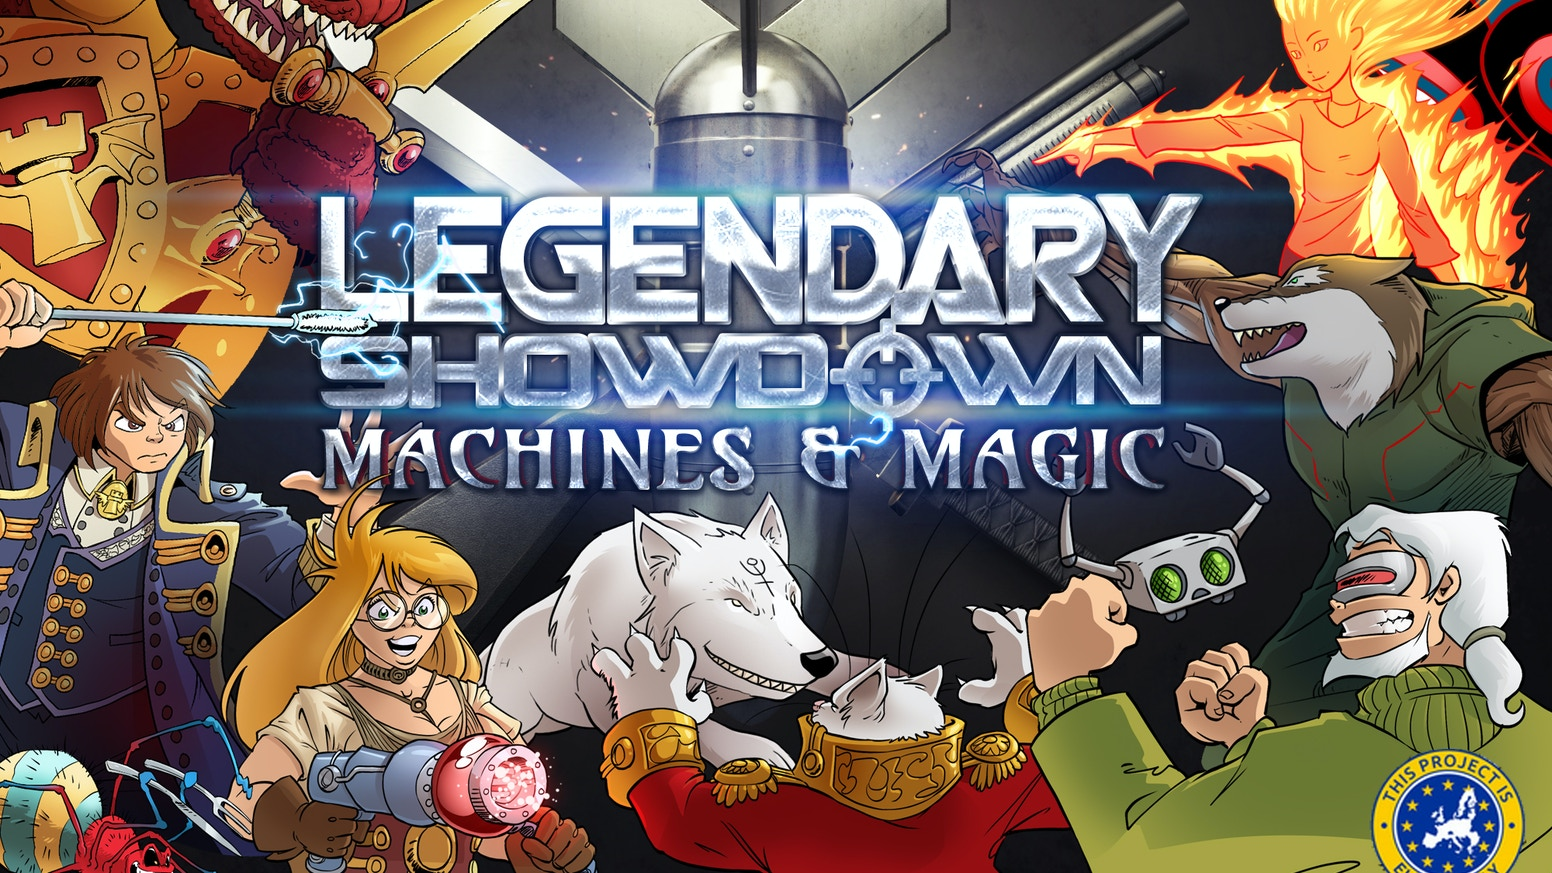 Legendary Showdown: Machines and Magic combines the worlds of Girl Genius & Gunnerkrigg Court to create comically epic battles!